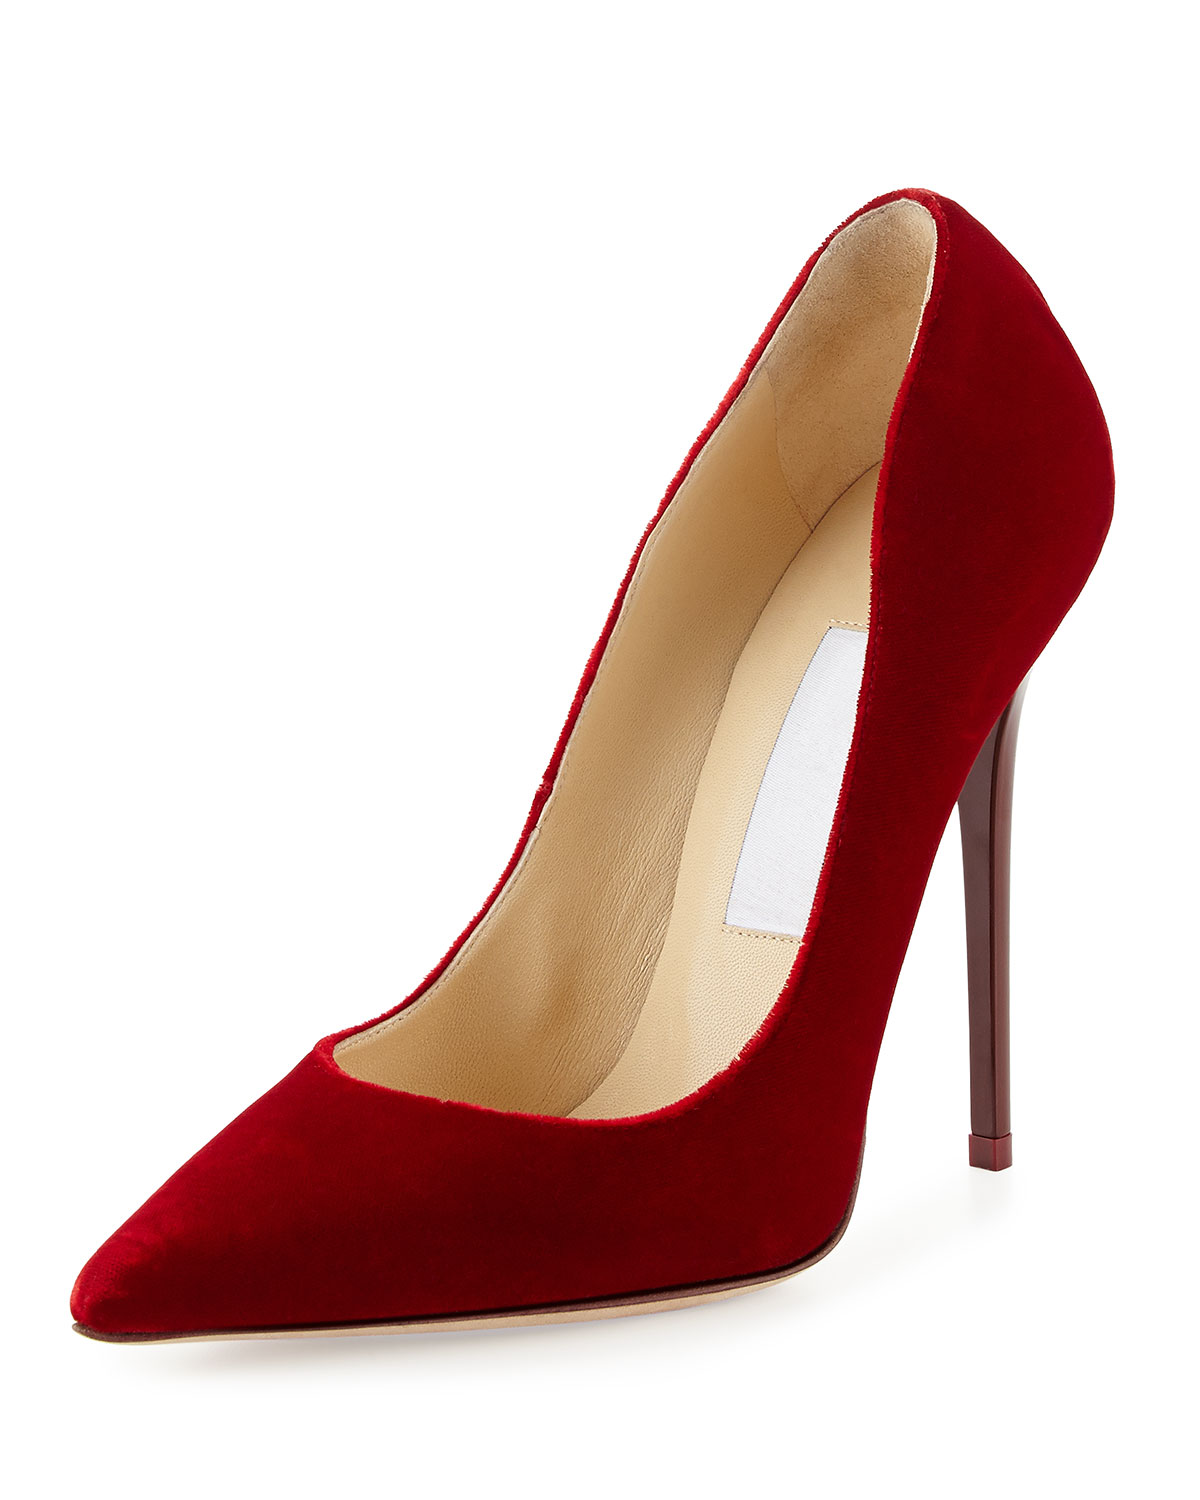 b73d03de6fa6 Jimmy Choo Anouk Velvet High-Heel Pump